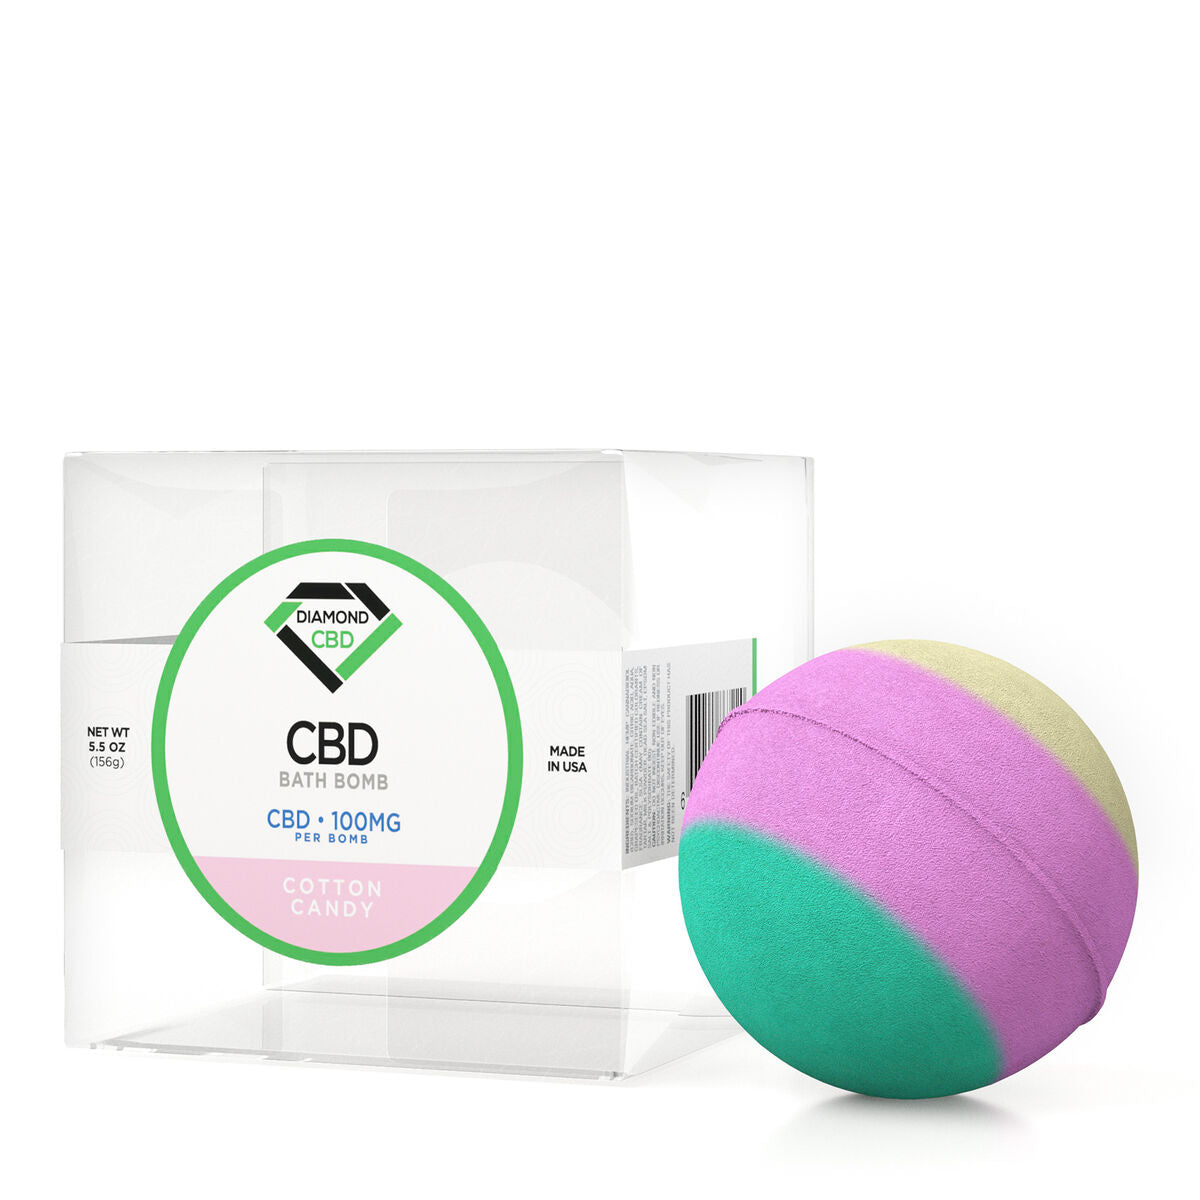 Diamond CBD Bath Bomb Cotton Candy - 100mg